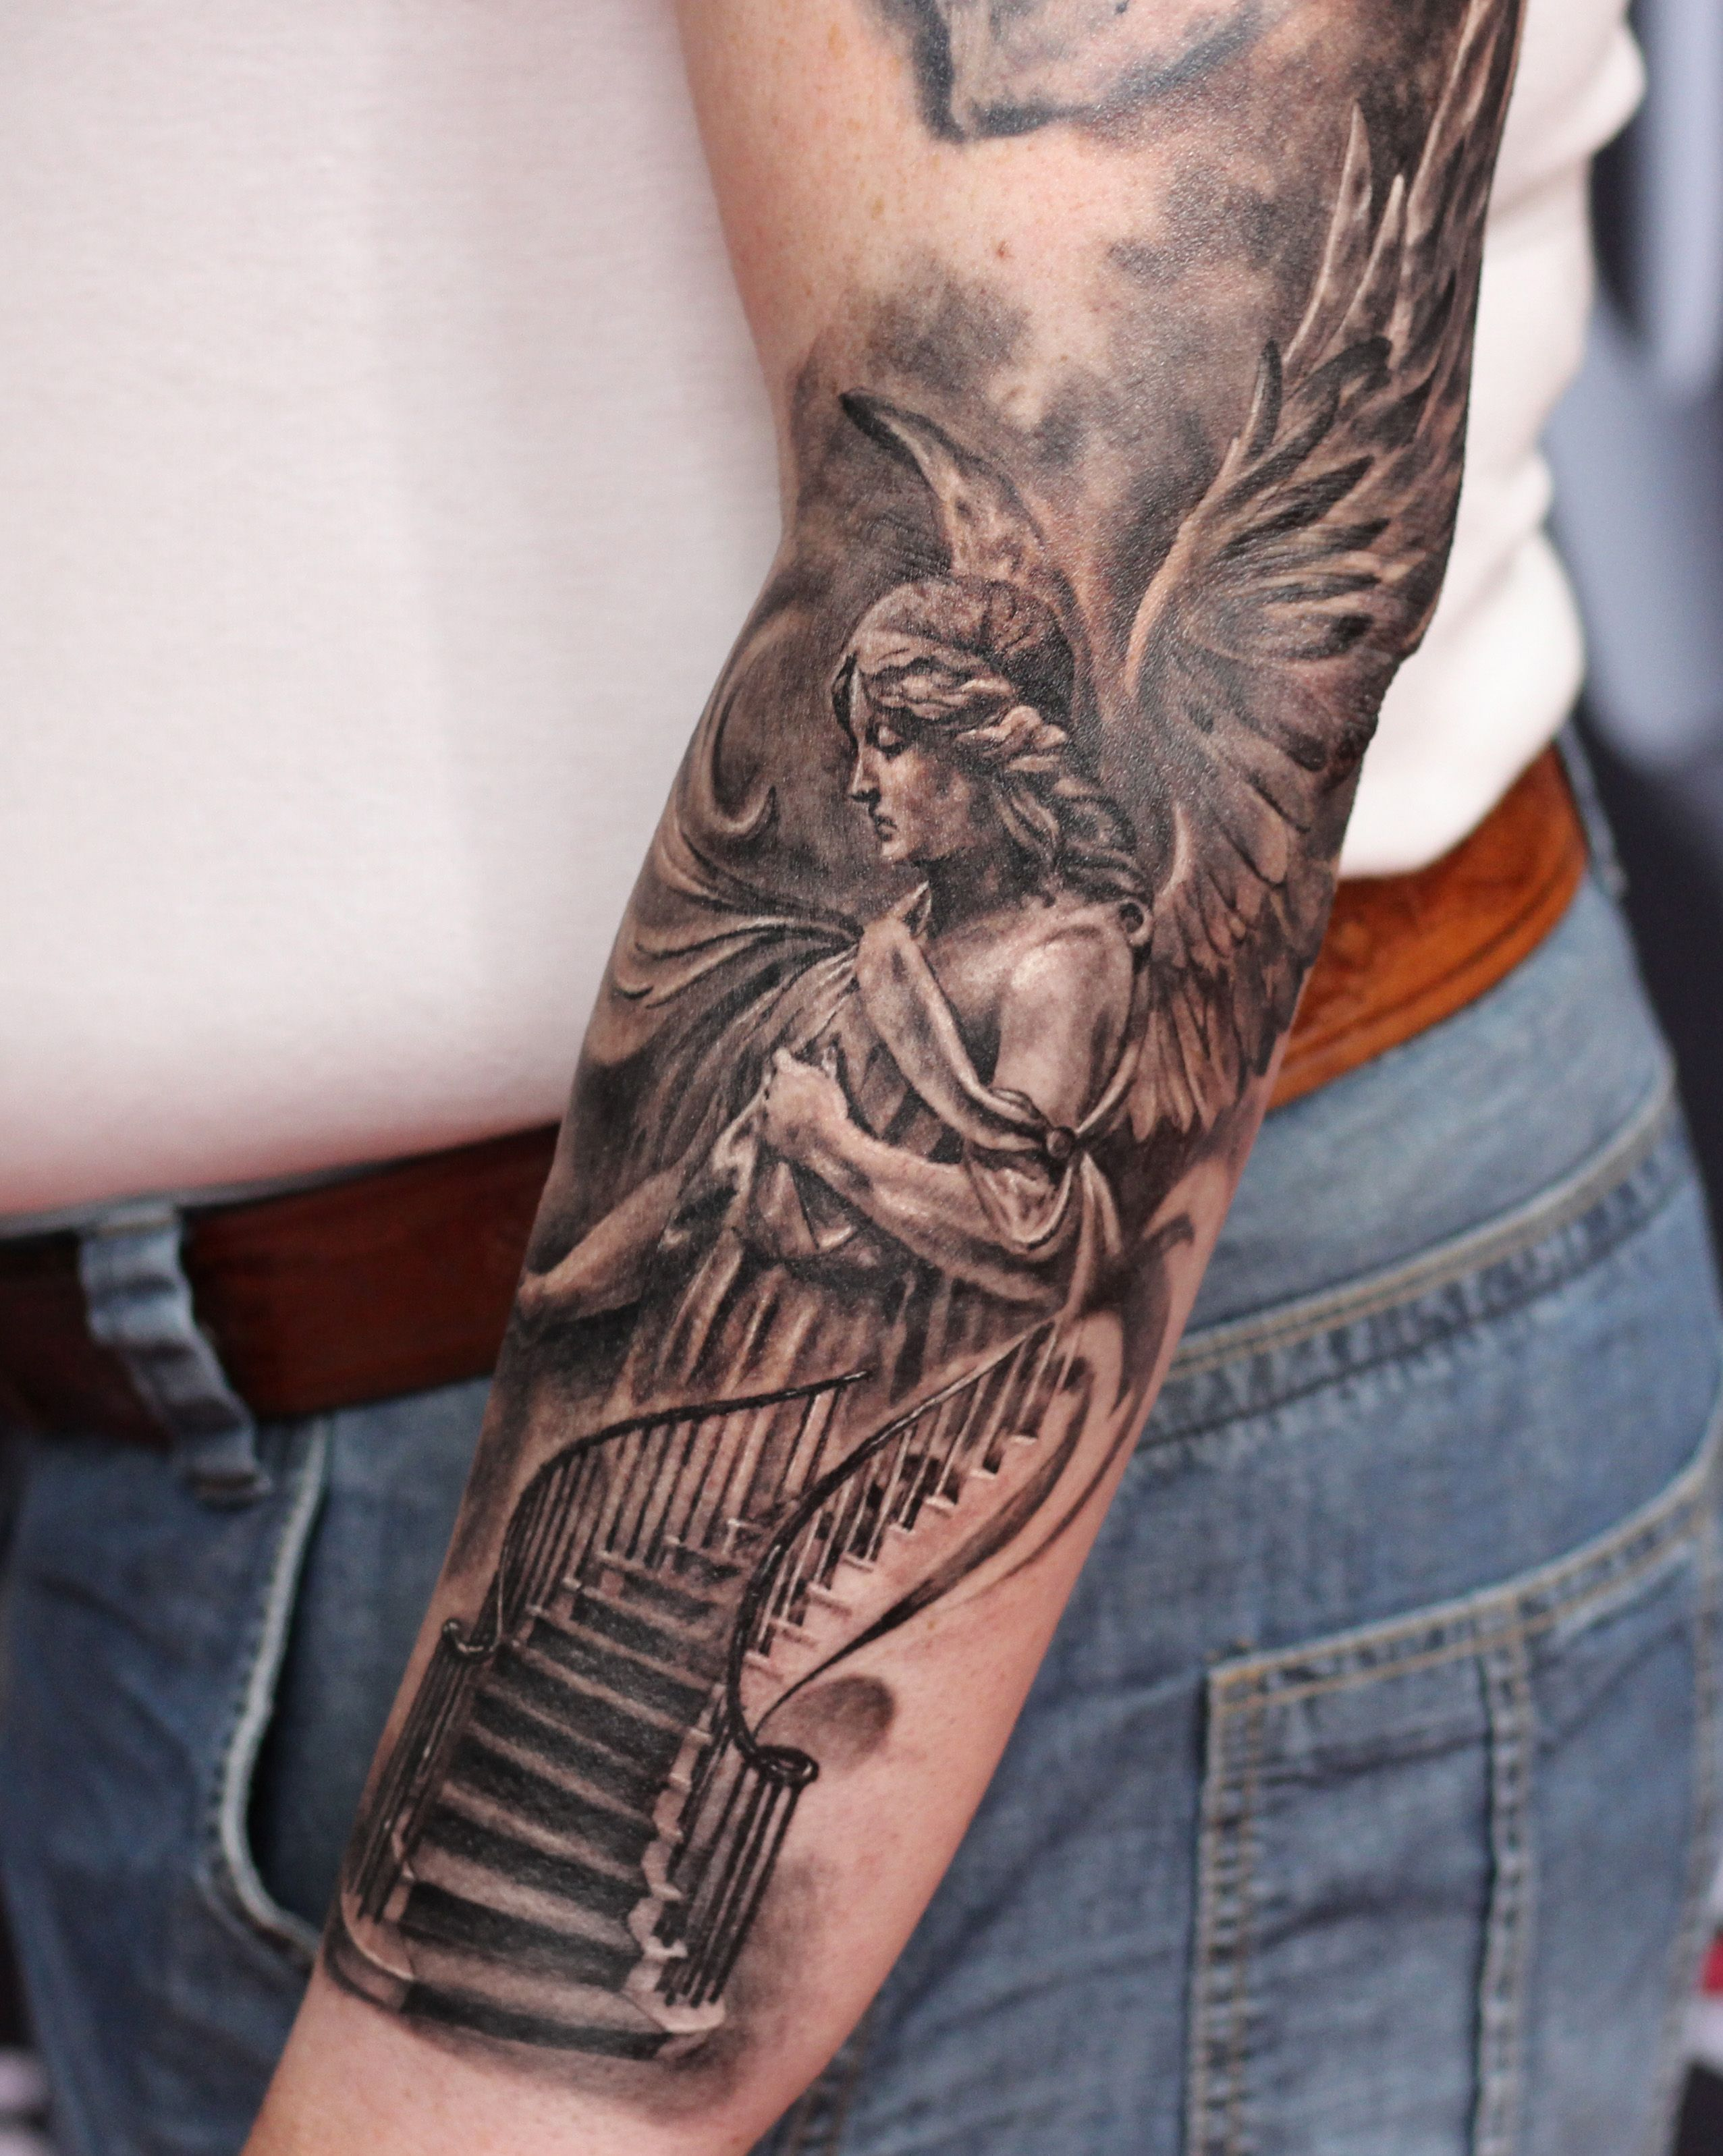 Guardian Angel Heaven Forearm Tattoos : guardian, angel, heaven, forearm, tattoos, Angel, Tattoo, Tattoos,, Tattoo,, Heaven, Tattoos